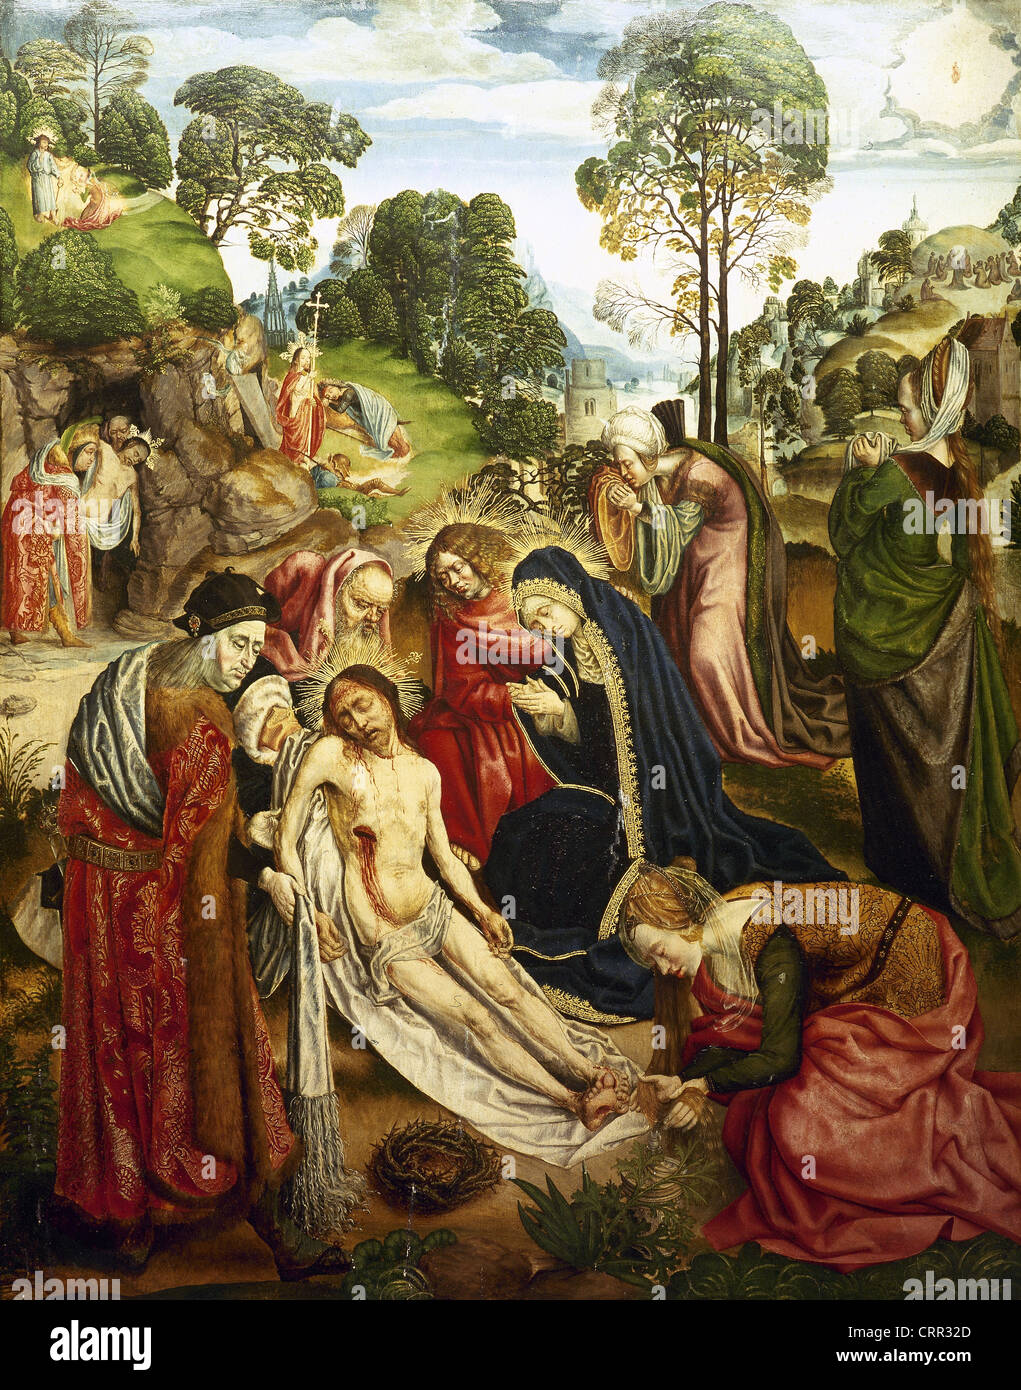 The Aachen Passion Altar. 1505-1510. By the Master of the Altars of Aachen. Detail. Lamentation of Christ. Right - Stock Image